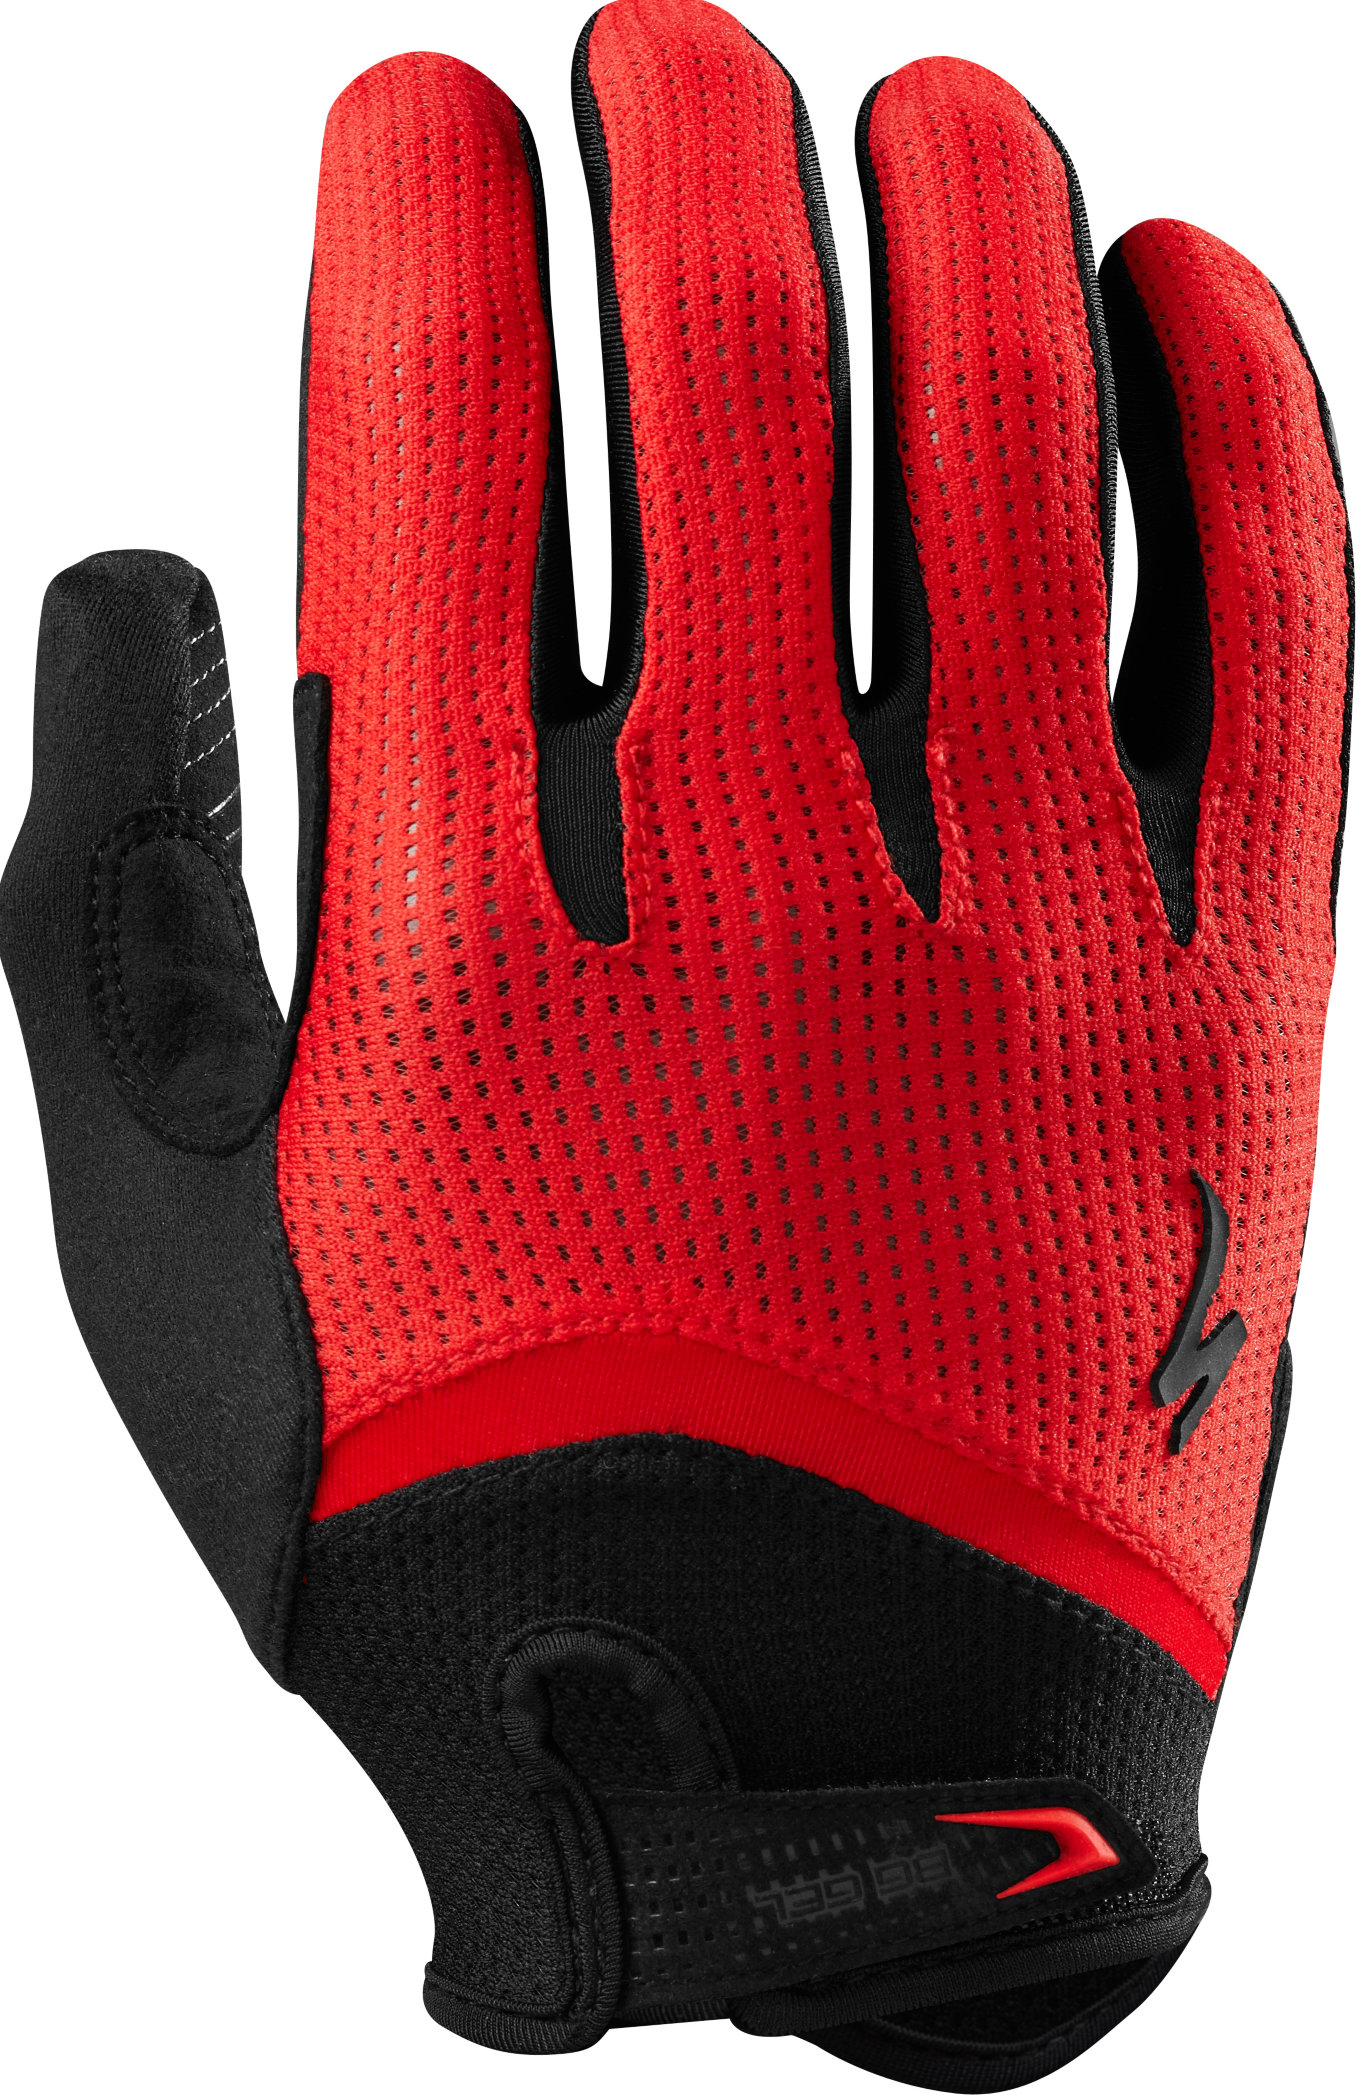 SPECIALIZED BG GEL GLOVE LF RED L - Bikedreams & Dustbikes